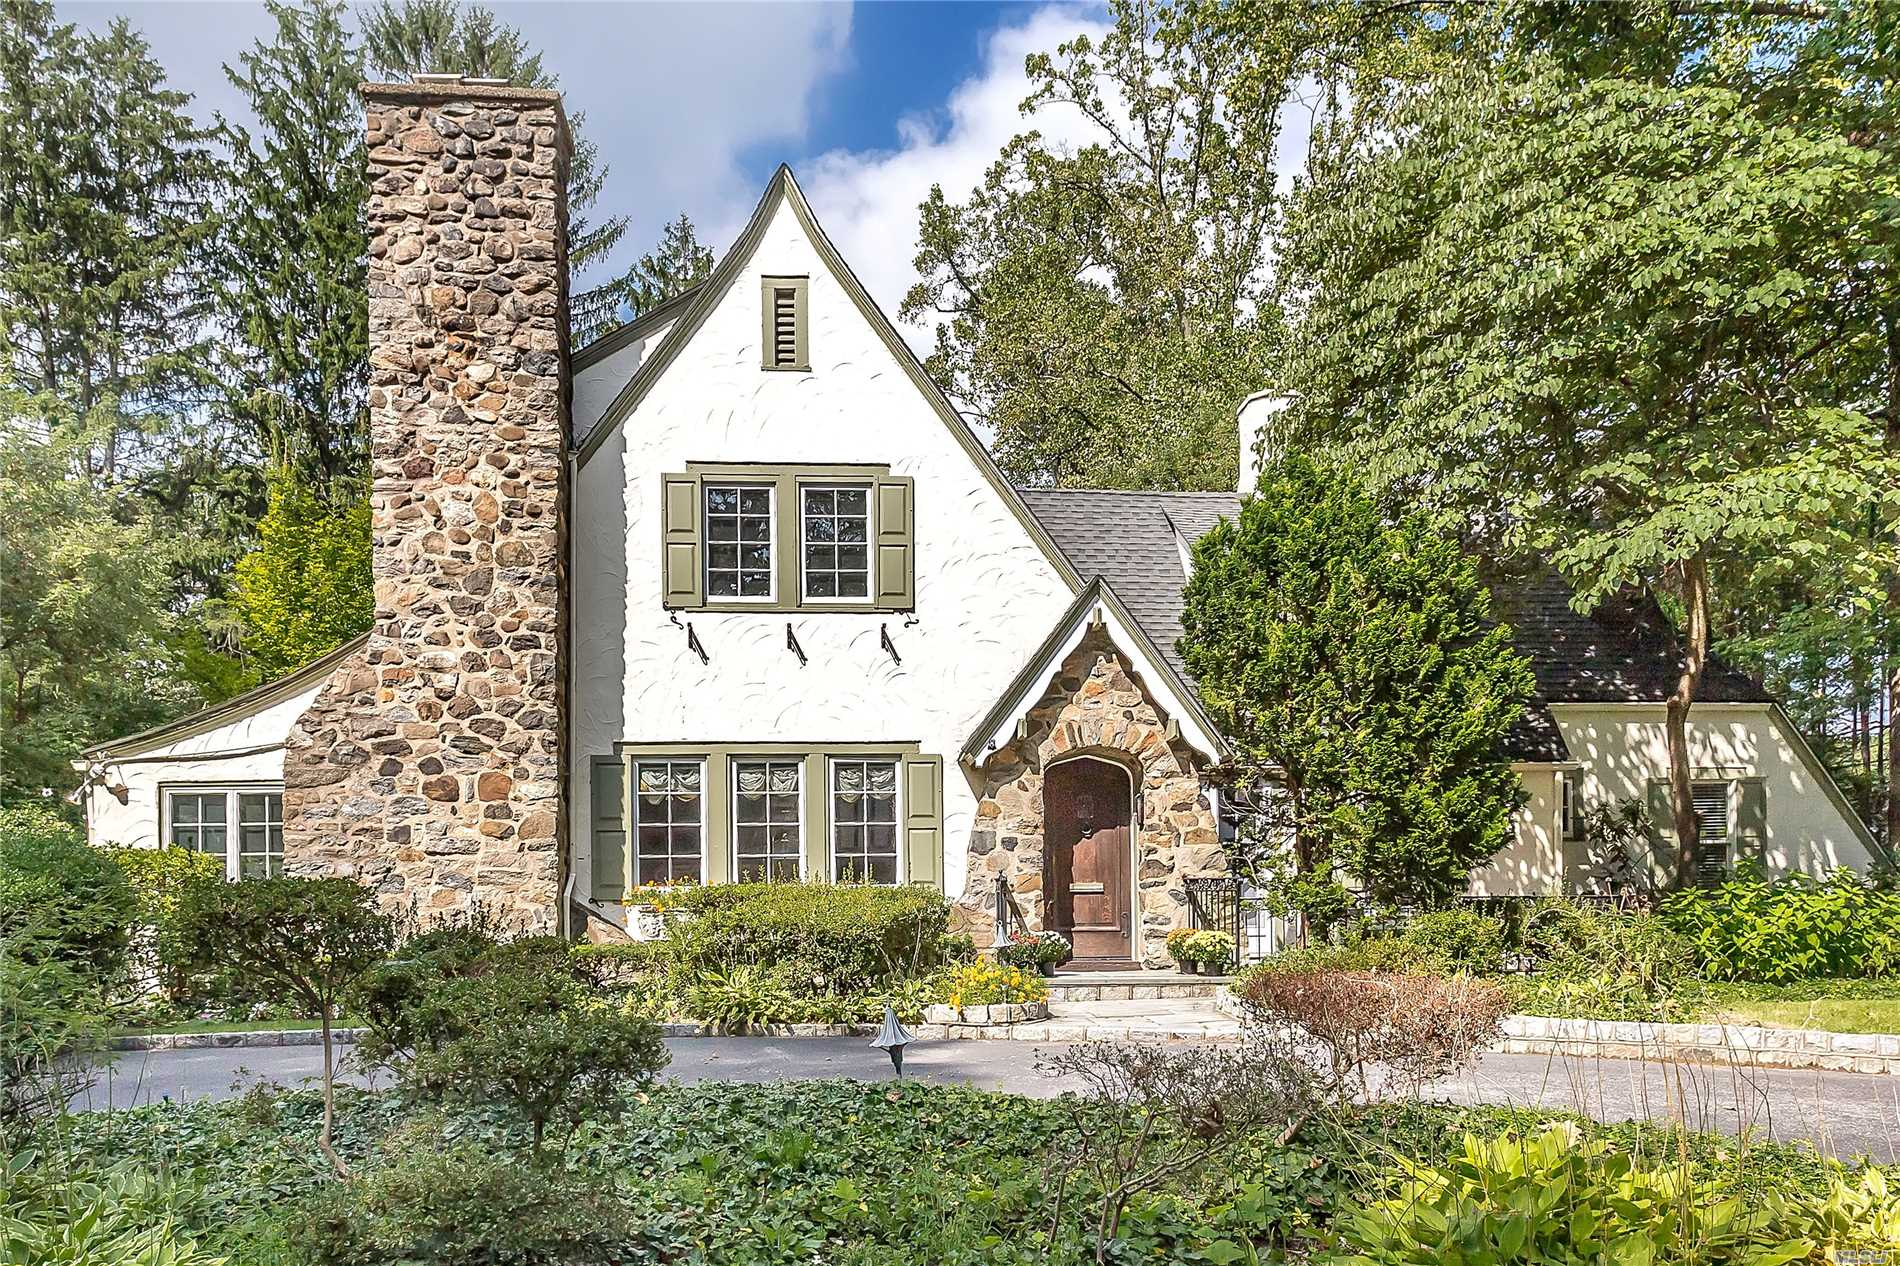 Welcome To This Beautiful, Sunny, Move-In-Ready Tudor Situated On Almost 1/2 Acre Of Property In The Prestigious Village Of Great Neck Estates. The Home Is In Close Vicinity To The Lirr, Has A Private Police Dept, Private Waterfront Park, Tennis & Pool Club.